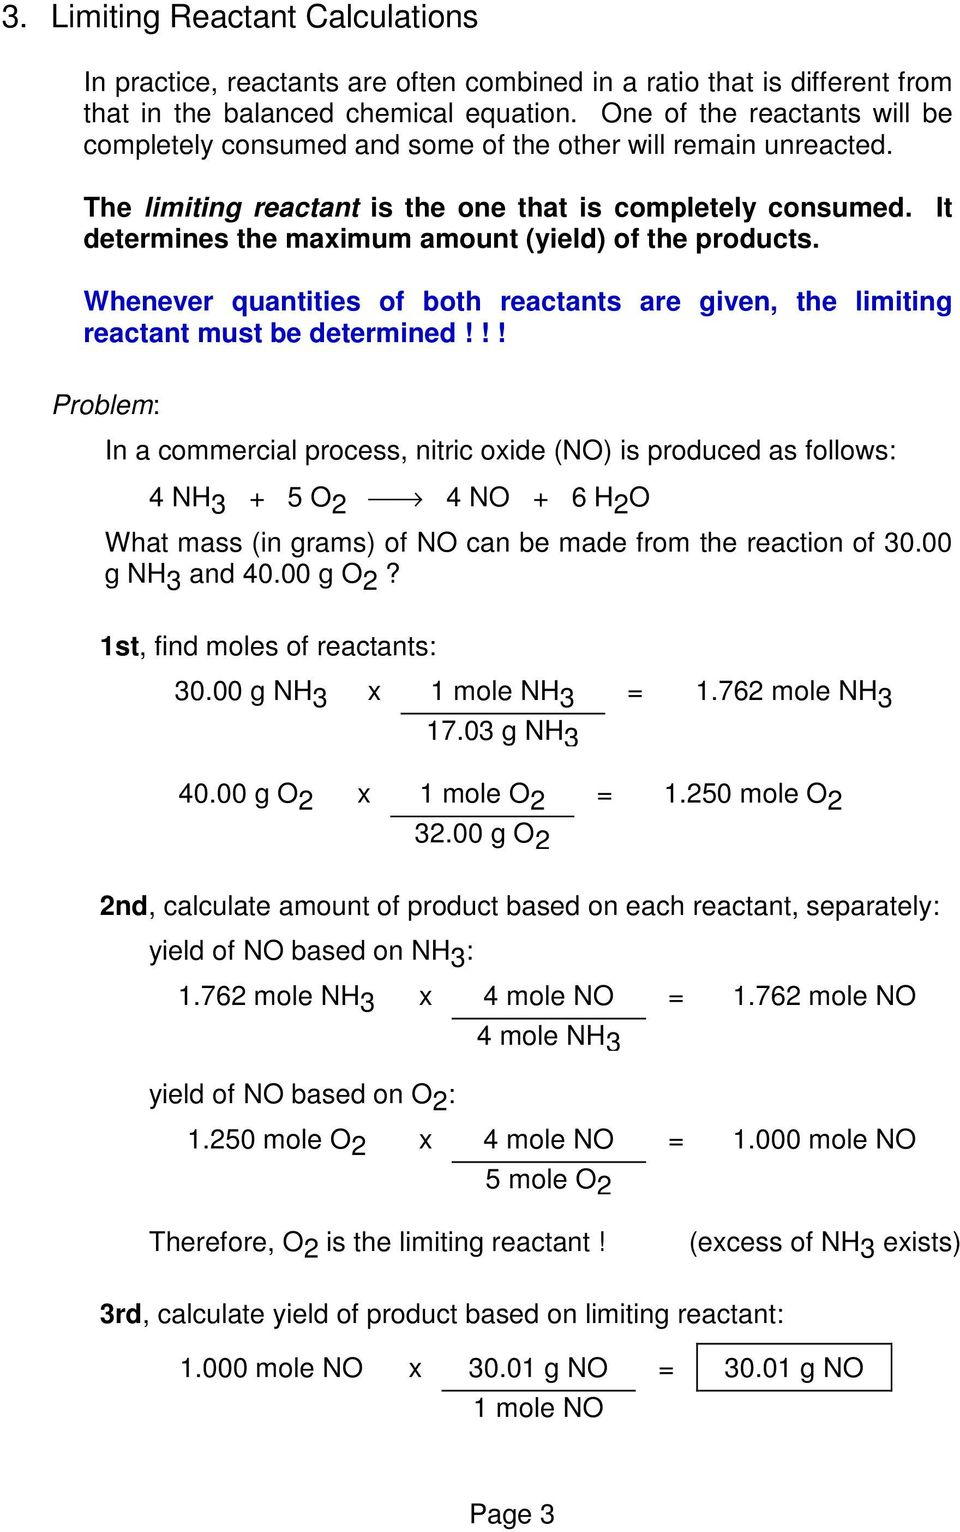 It determines the maximum amount (yield) of the products. Whenever quantities of both reactants are given, the limiting reactant must be determined!